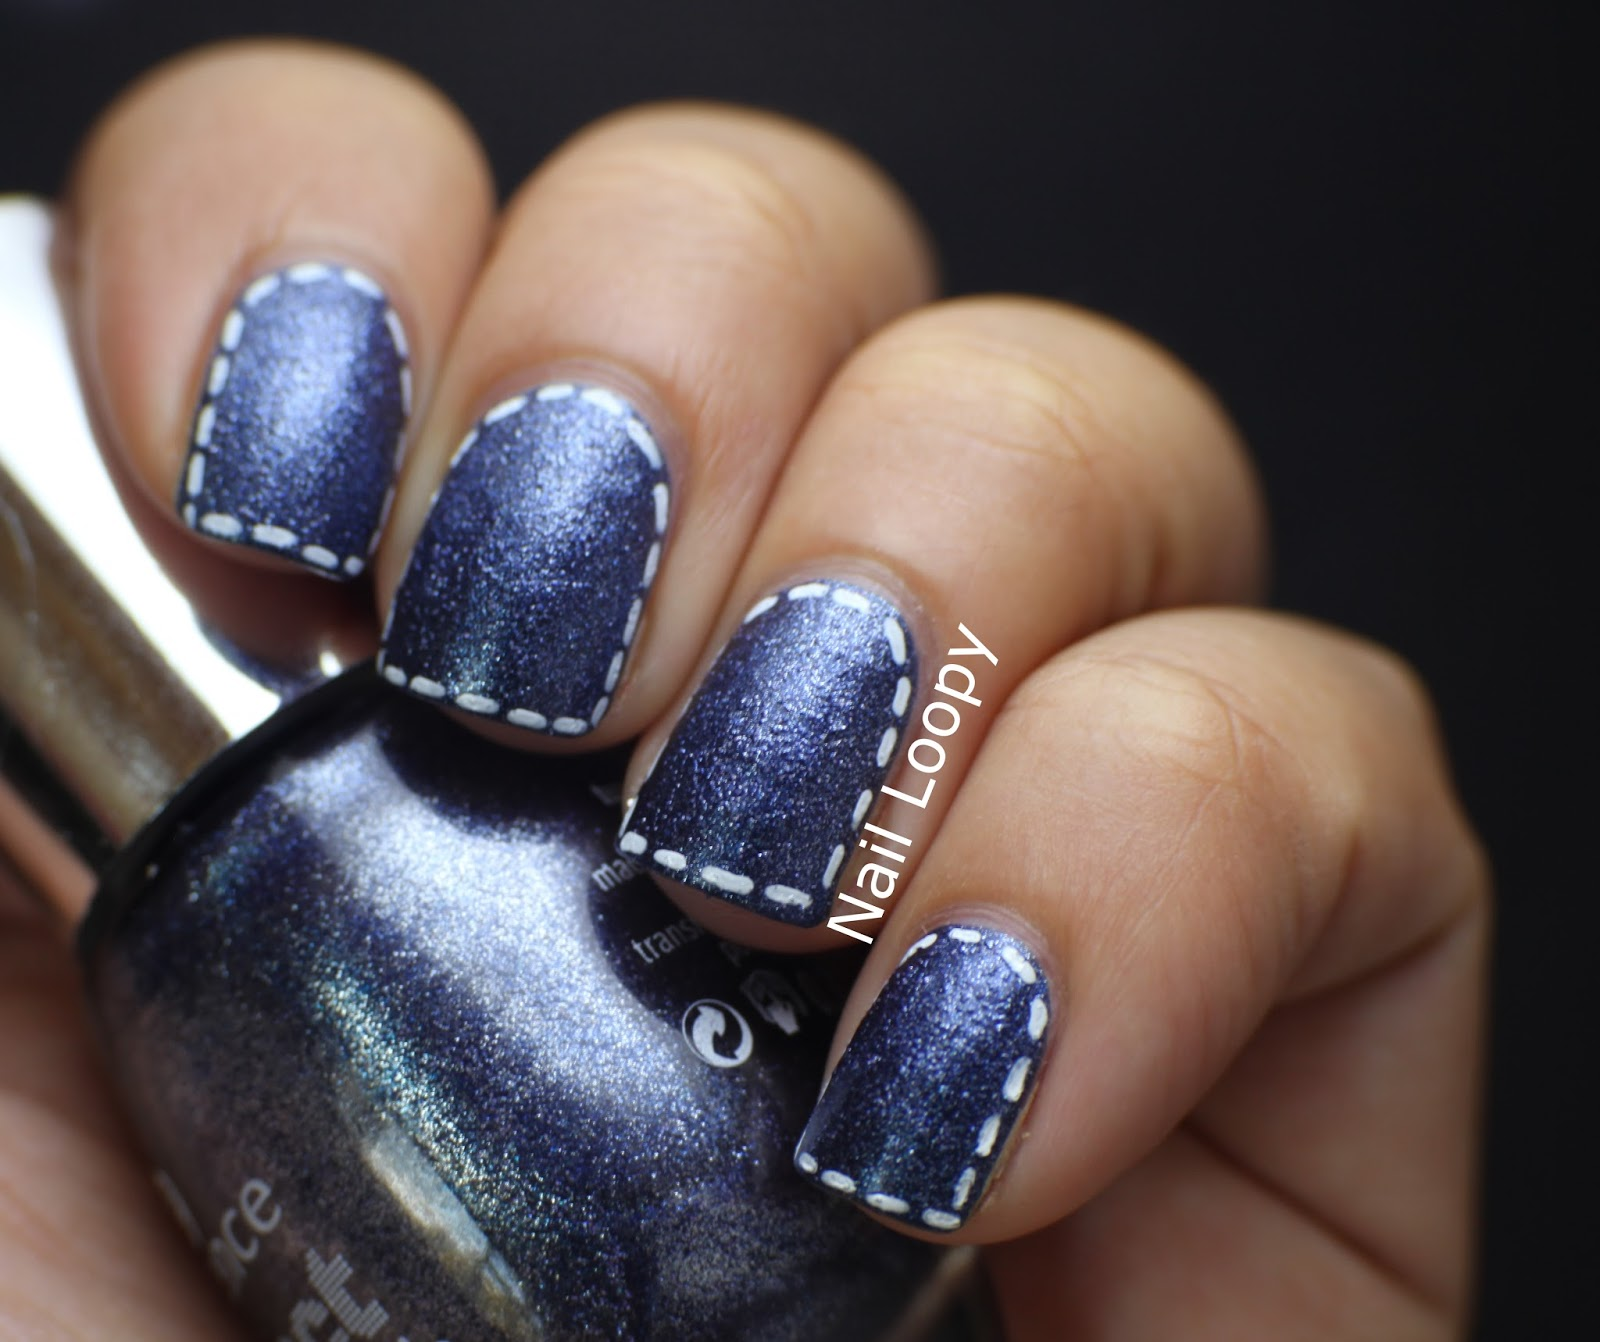 Nail loopy essence denim effect jeans nail art essence denim effect jeans nail art prinsesfo Choice Image